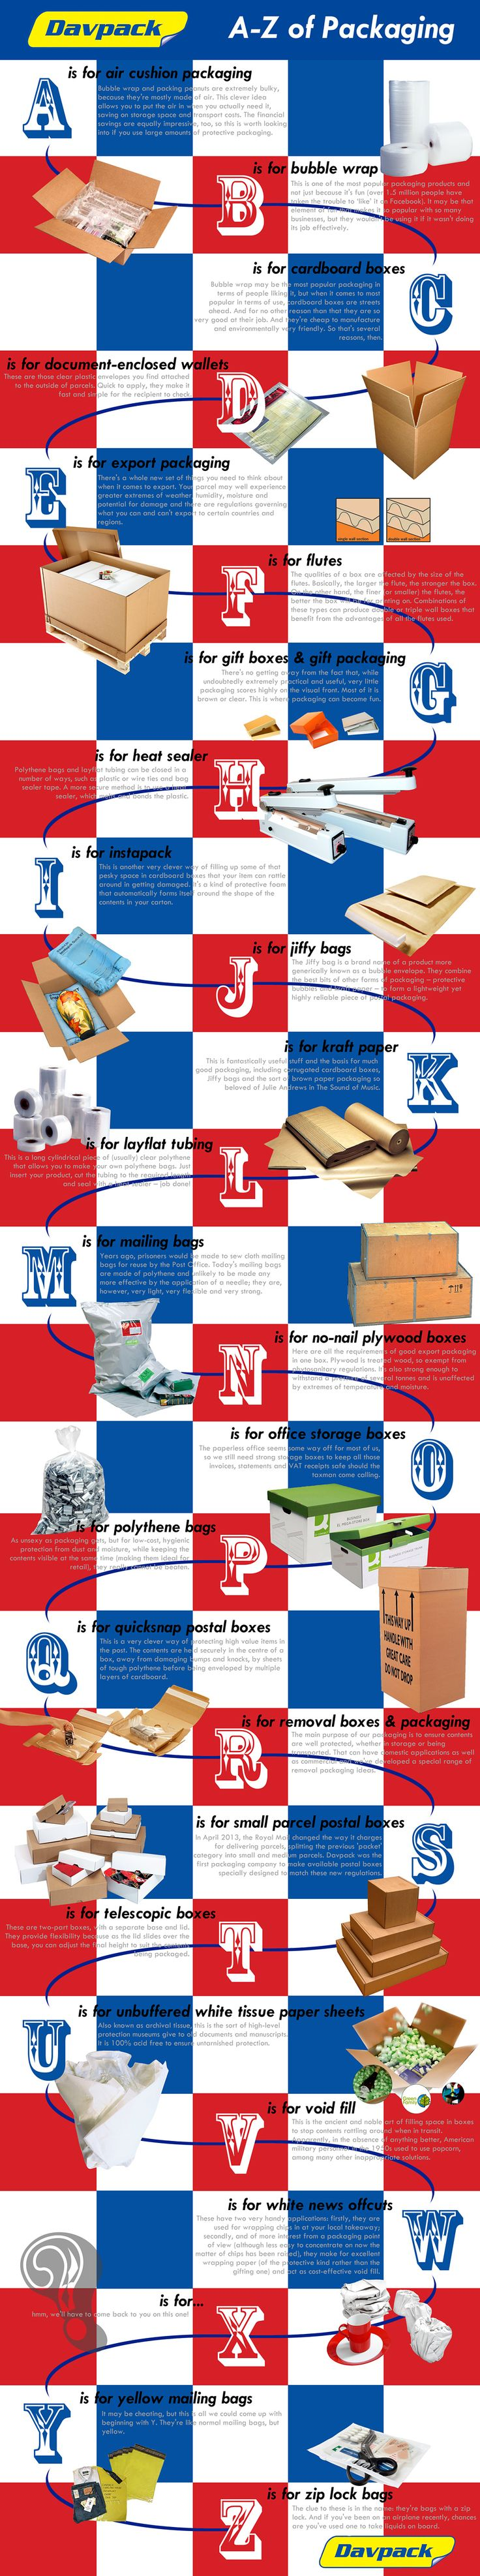 A-Z of Packaging